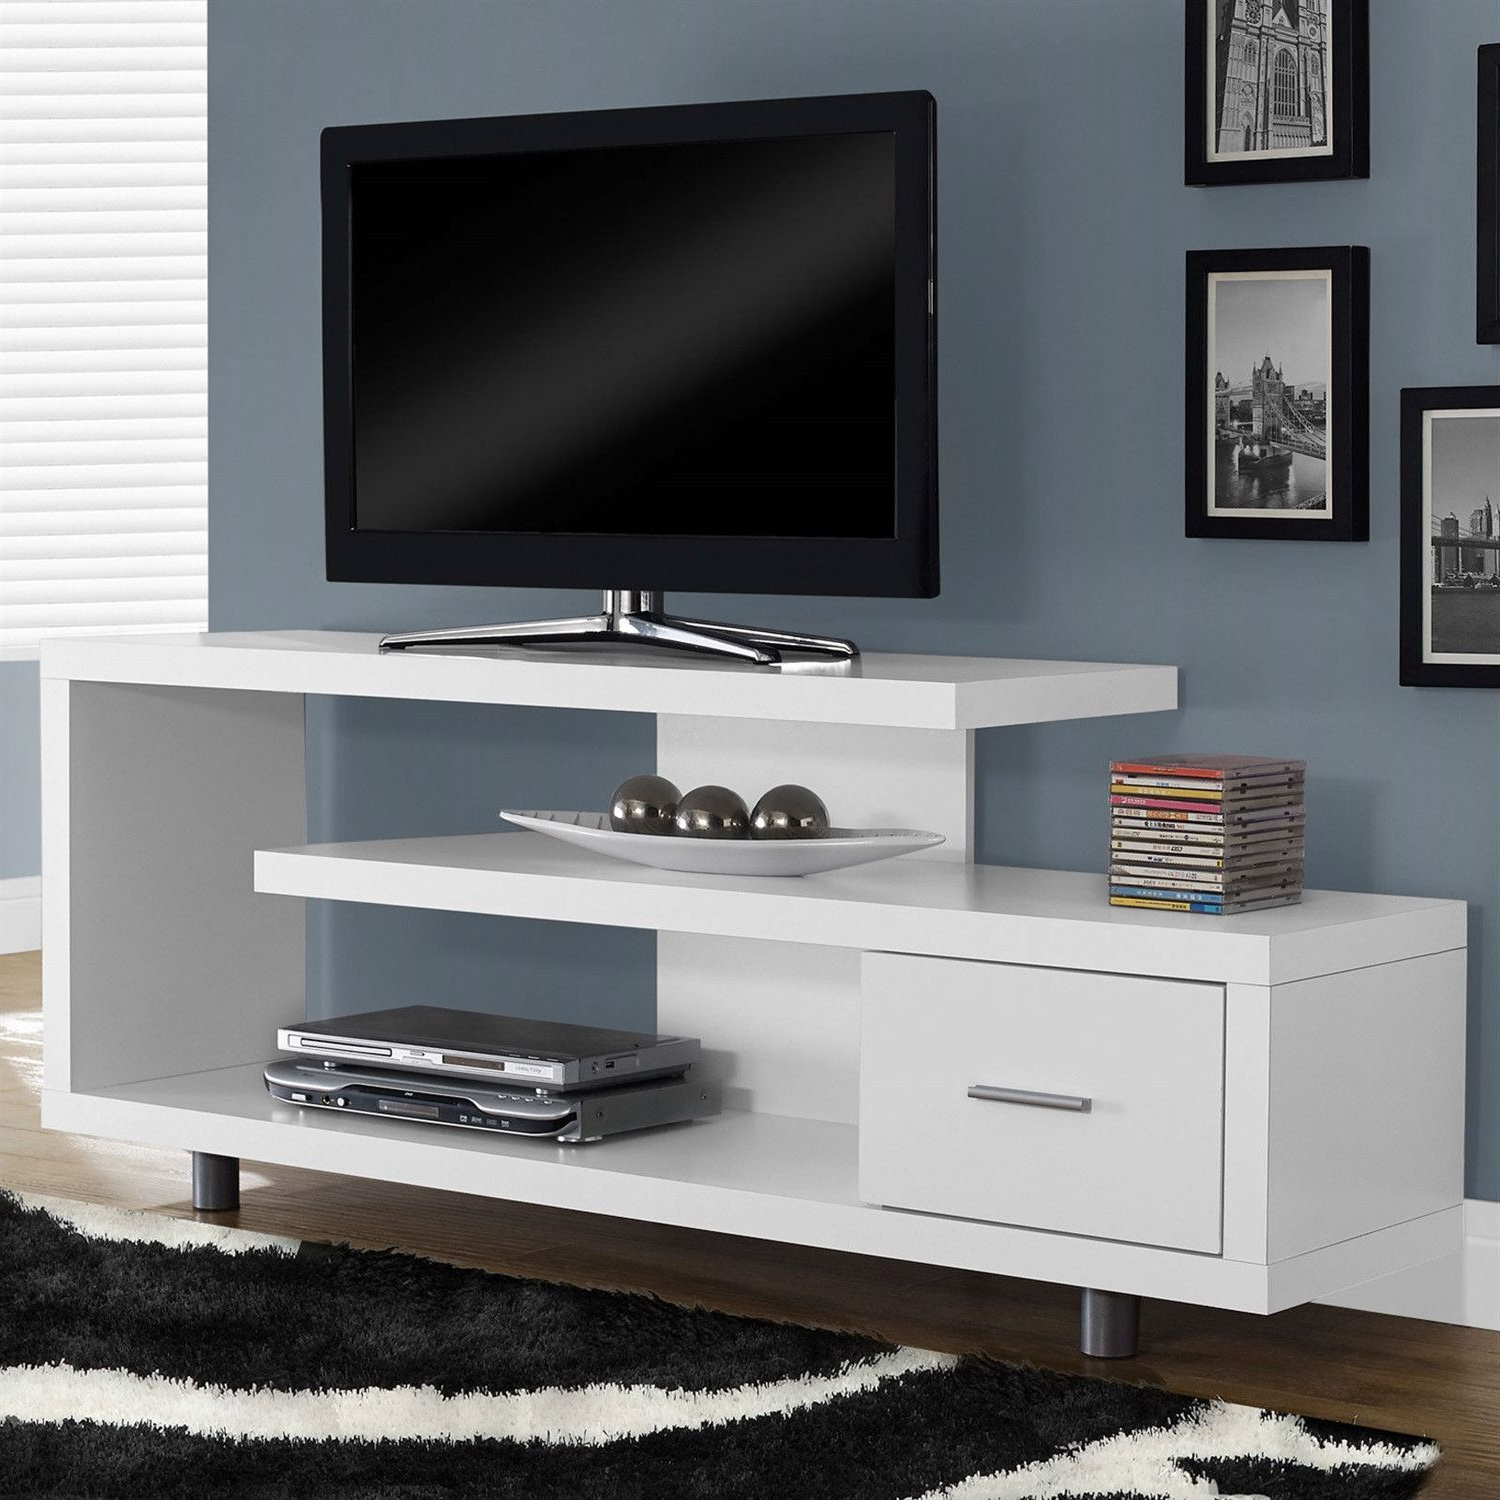 White Modern Tv Stand – Fits Up To 60 Inch Flat Screen Tv Within Marvin Rustic Natural 60 Inch Tv Stands (Gallery 1 of 20)